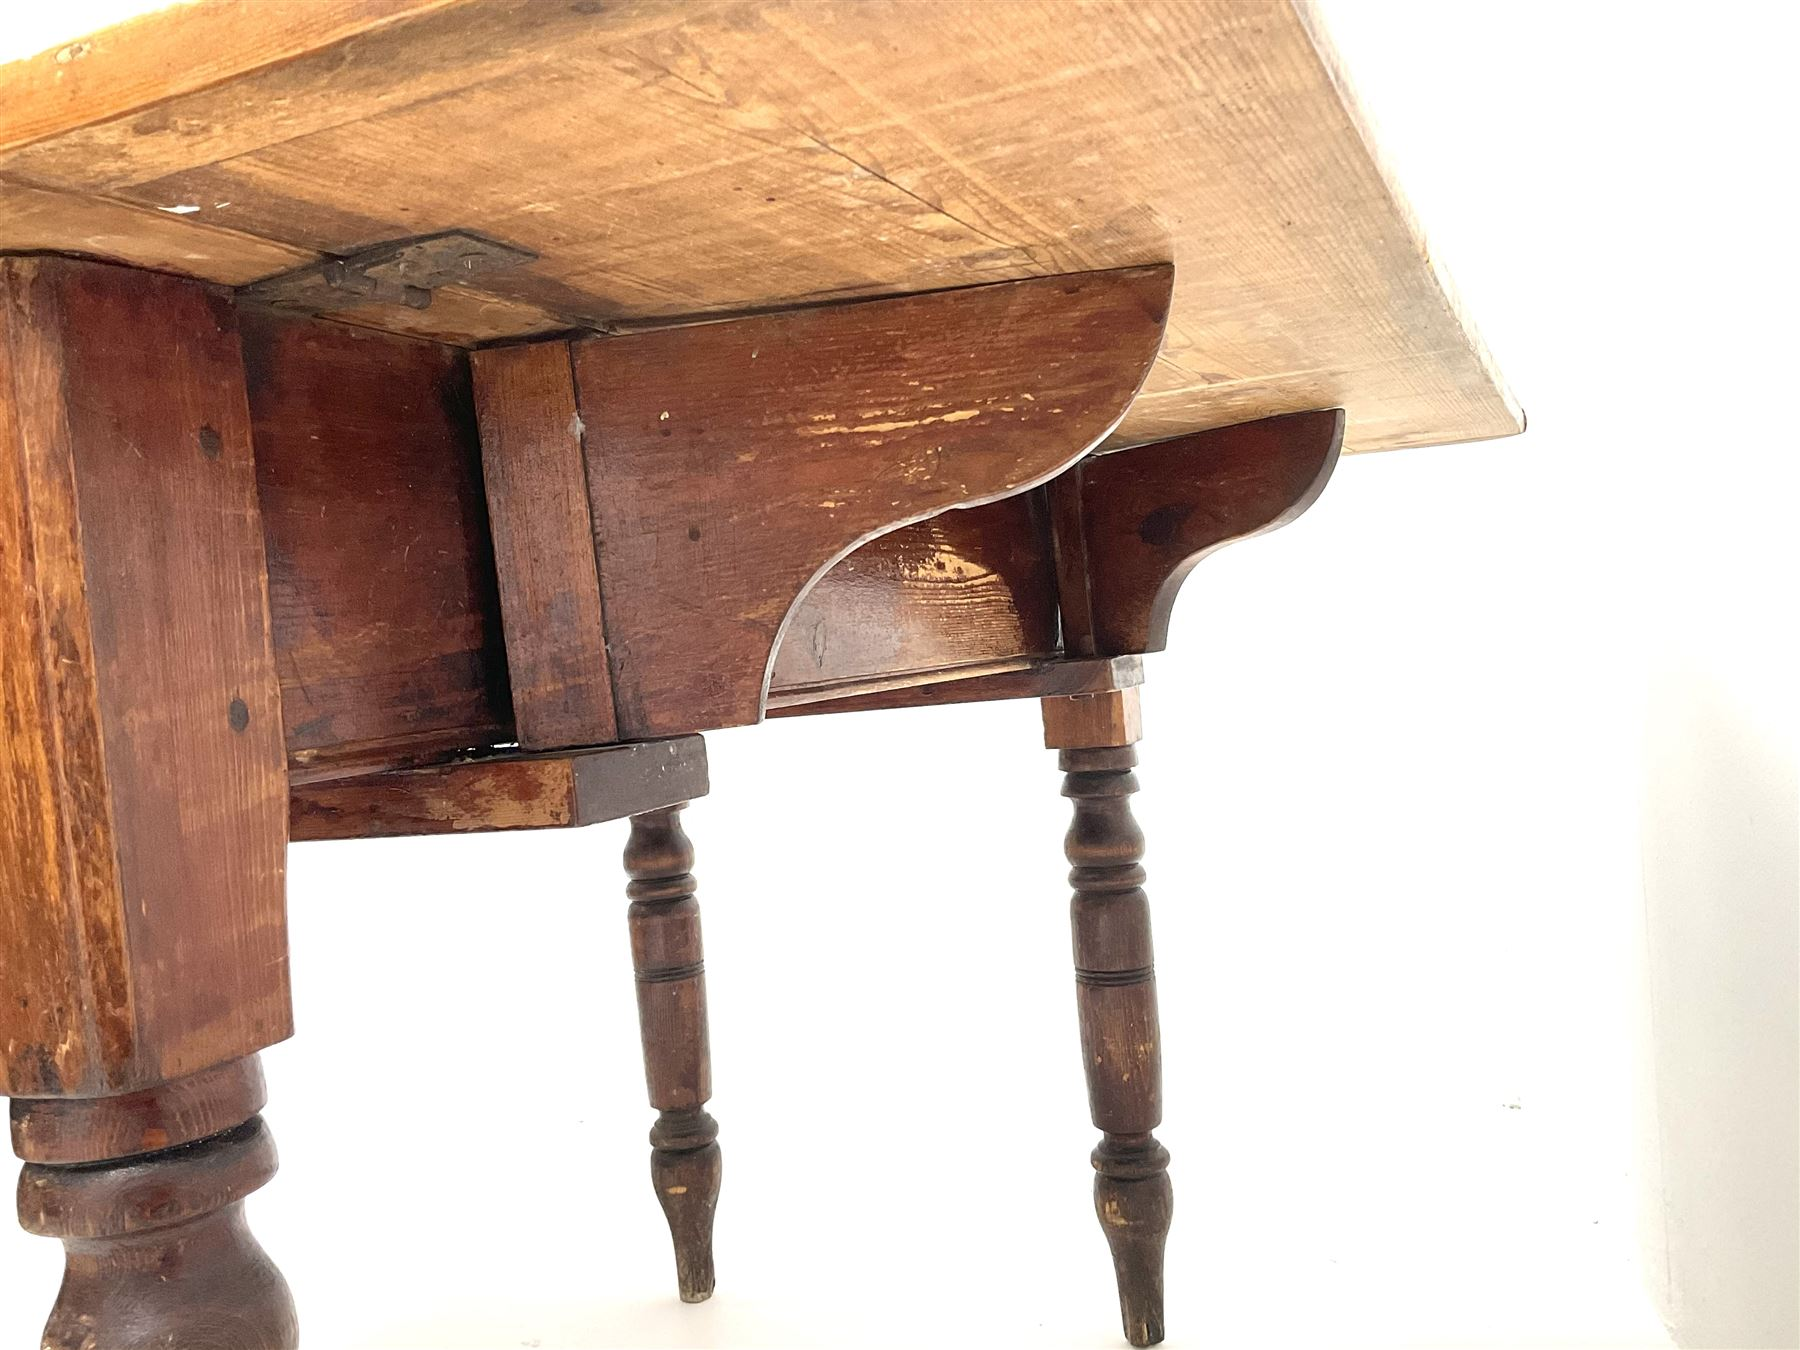 Victorian stained and polished pine drop leaf kitchen table - Image 4 of 4